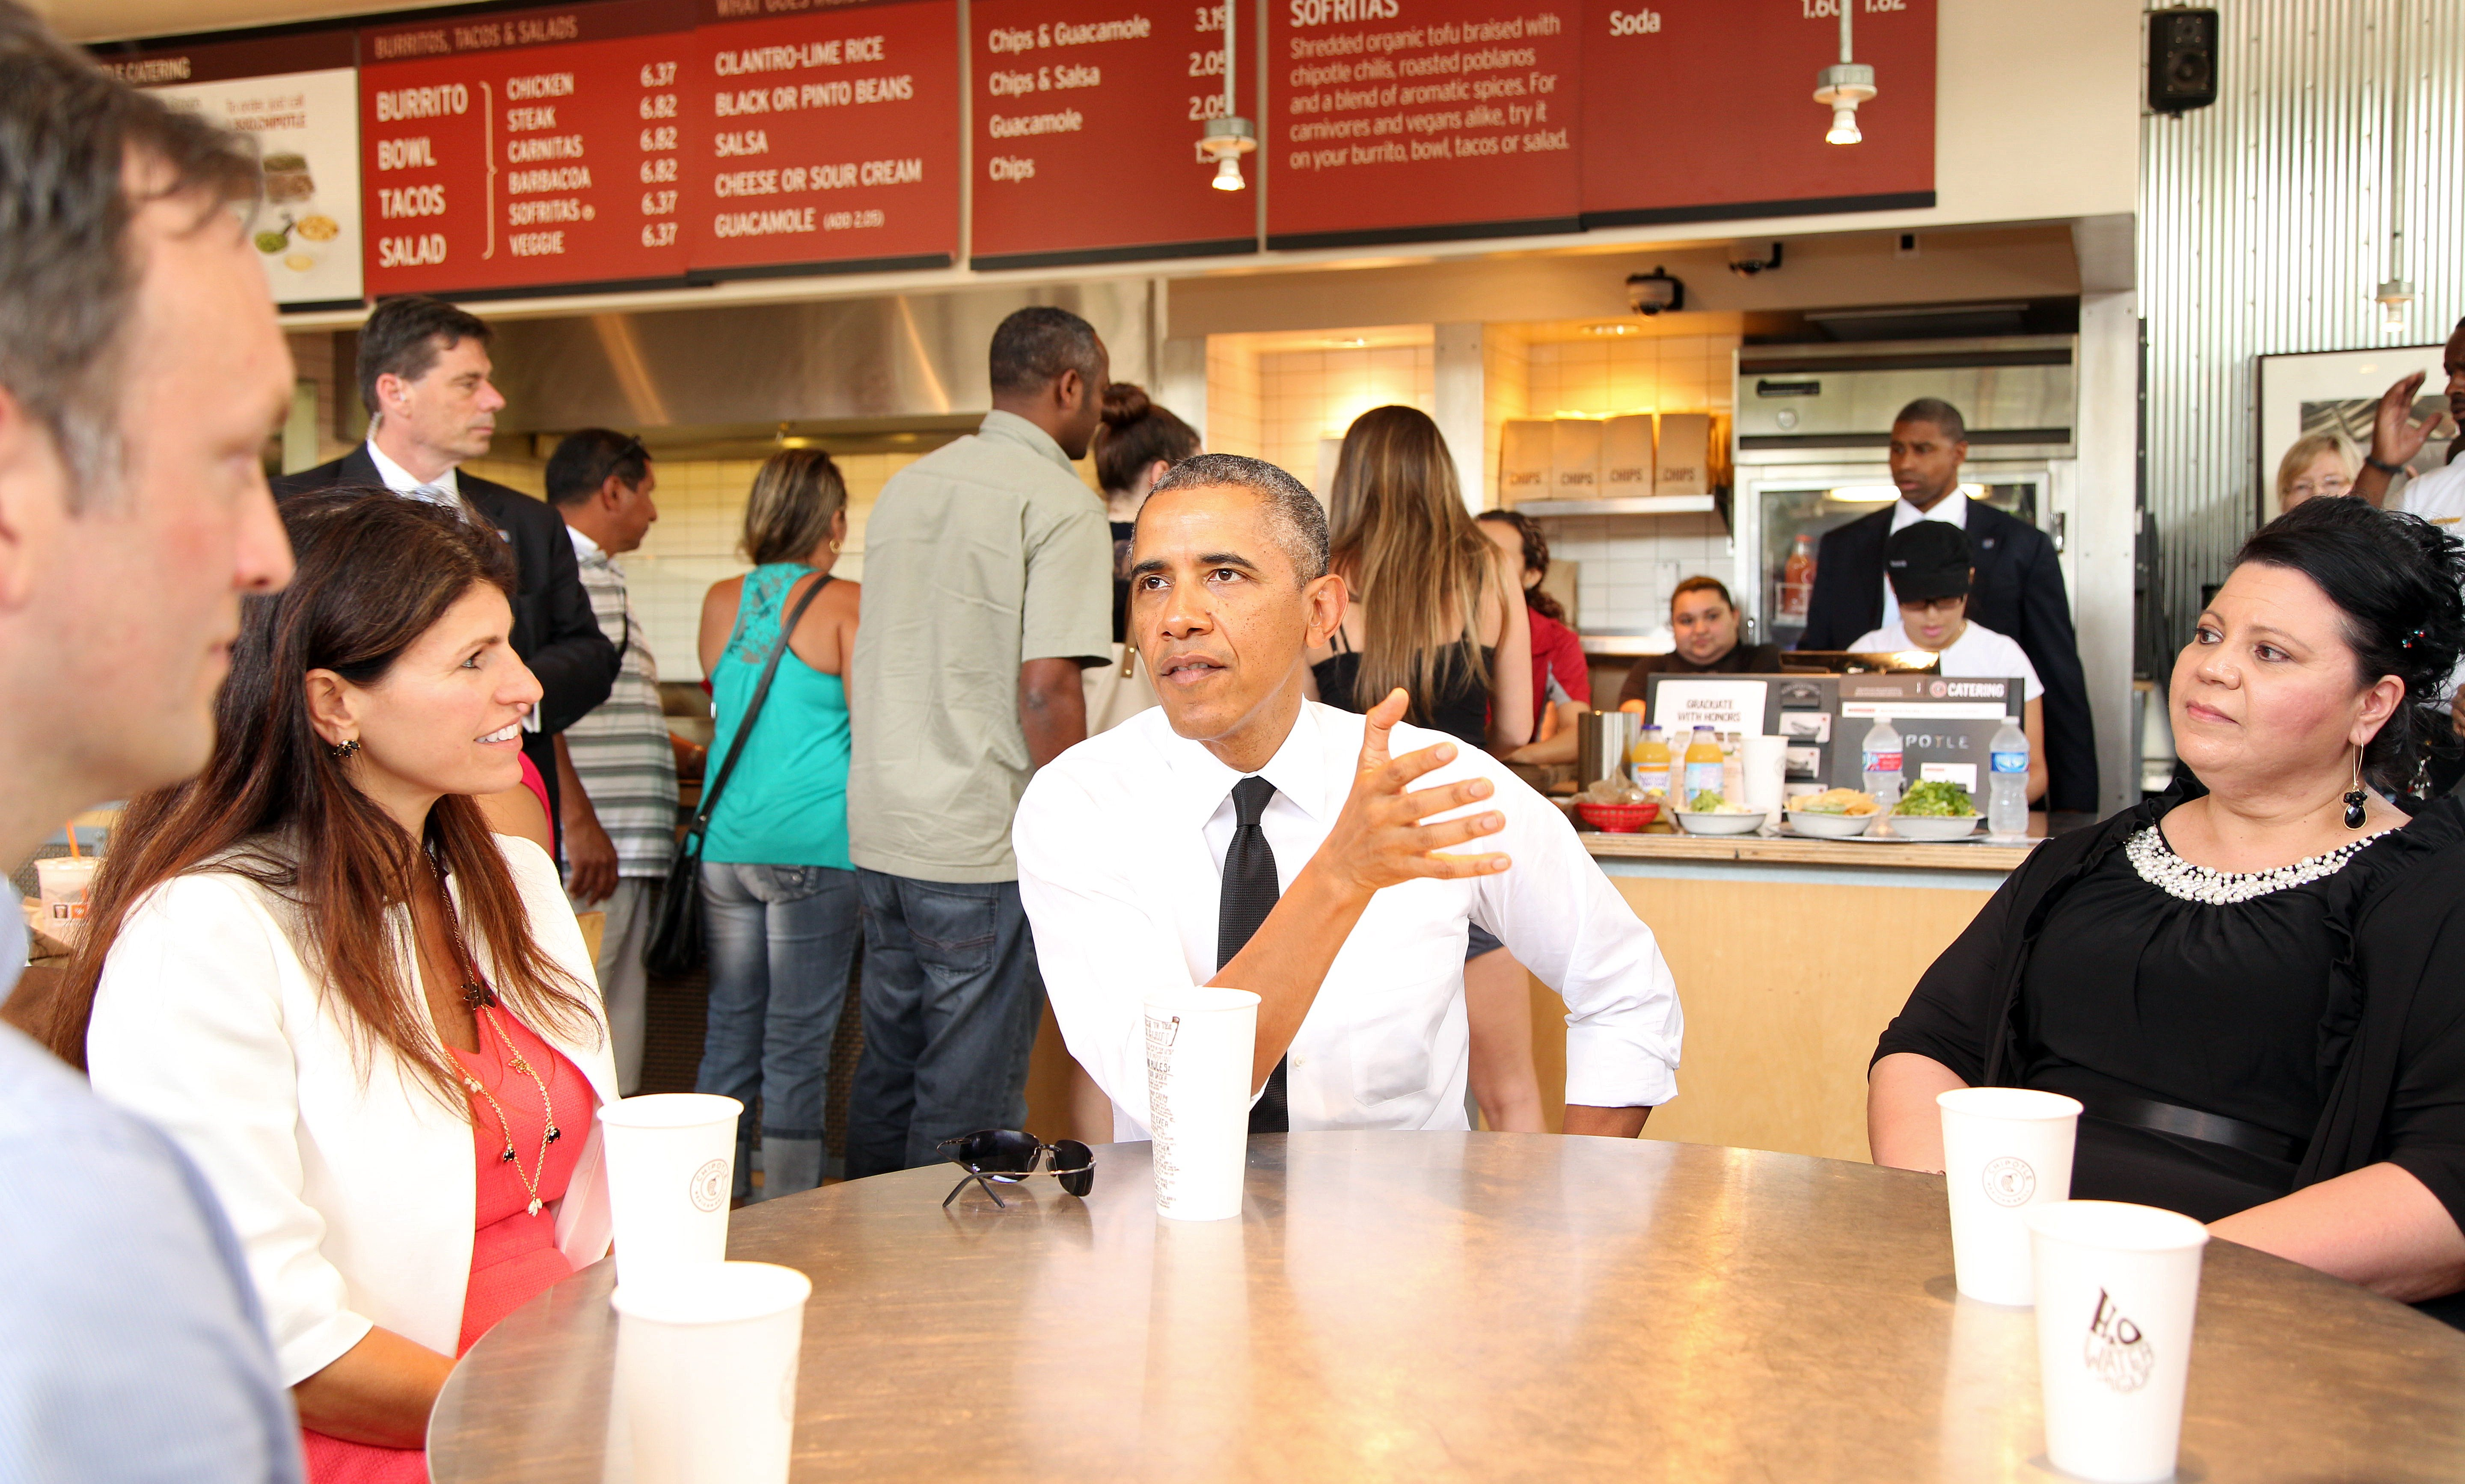 President Barack Obama joins several working parents, (l-r) Roger Trombley, Lisa Rumain, and Shelby Ramirez for lunch at a nearby Chipotle restaurant prior to speakinging at the first White House Summit on Working Families at the Omni Hotel in Washington, June 23, 2014.